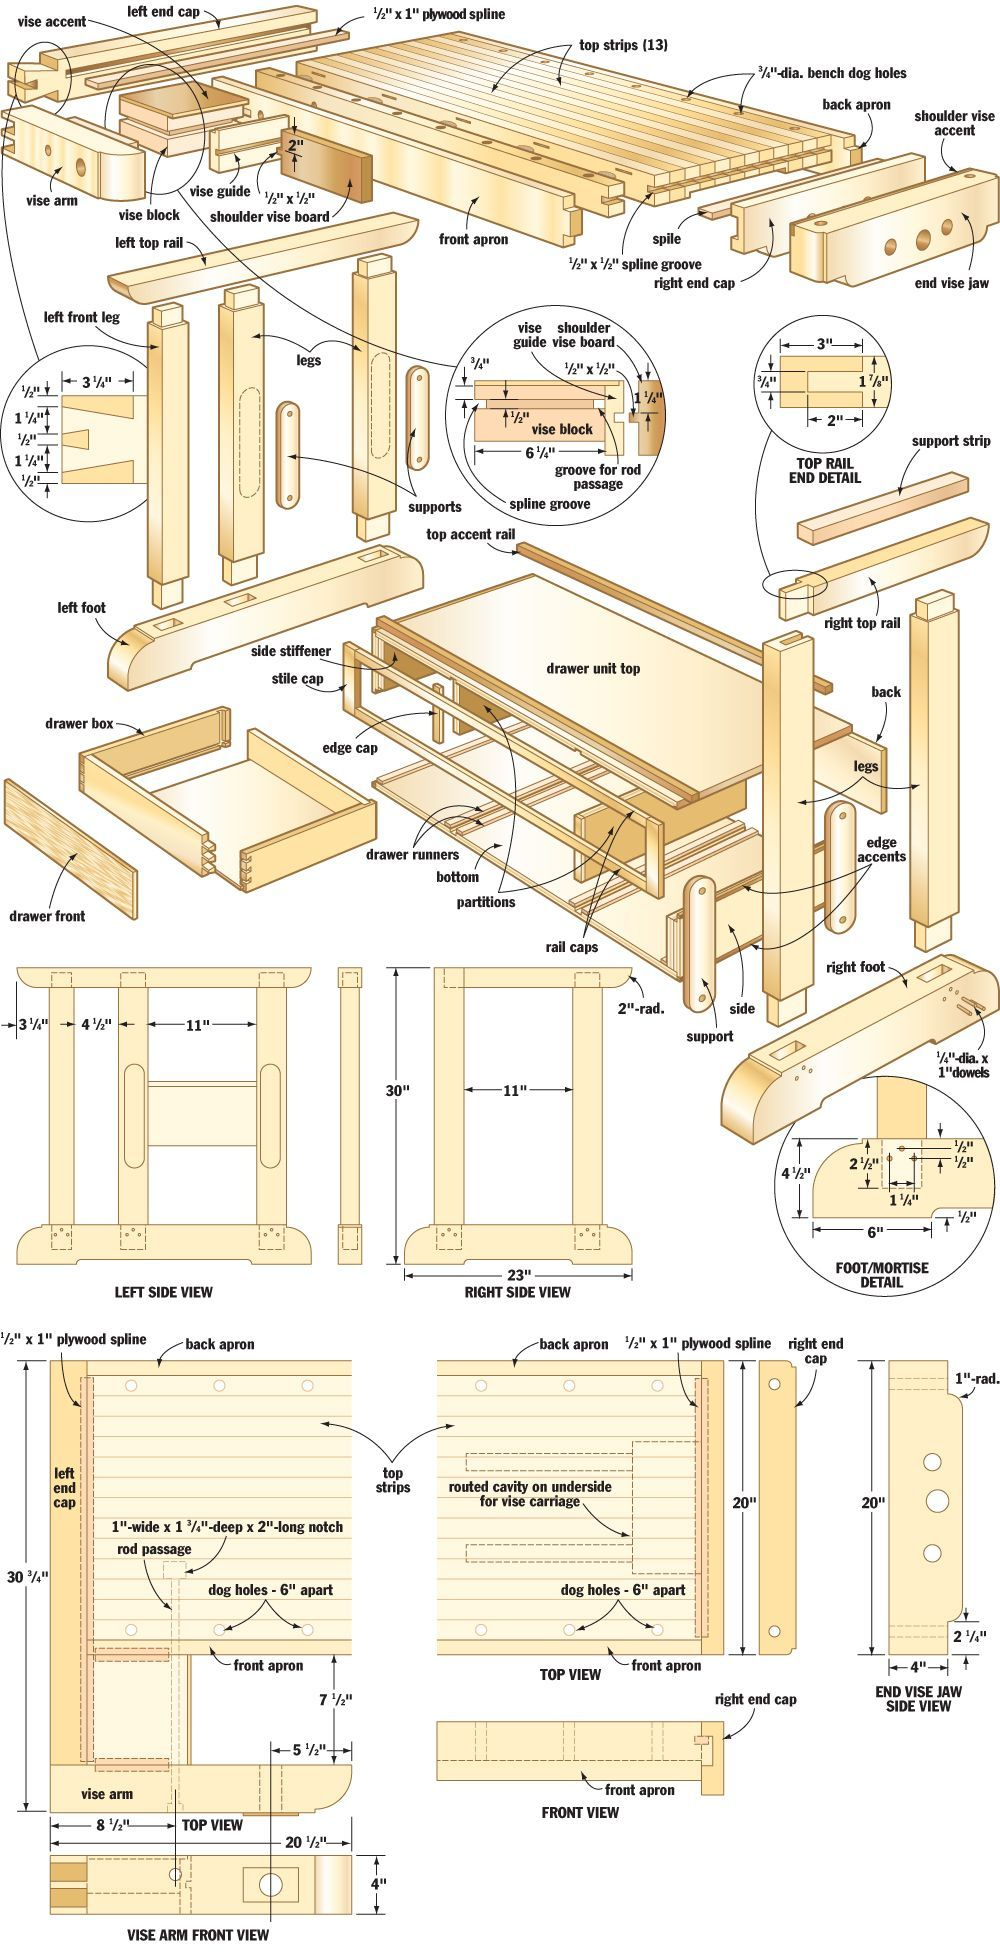 Teds Woodworking Review Teds Wood Working Offers 16 000 Woodworking Plans And Blueprin In 2020 Woodworking Plans Woodworking Furniture Plans Woodworking Plans Beginner